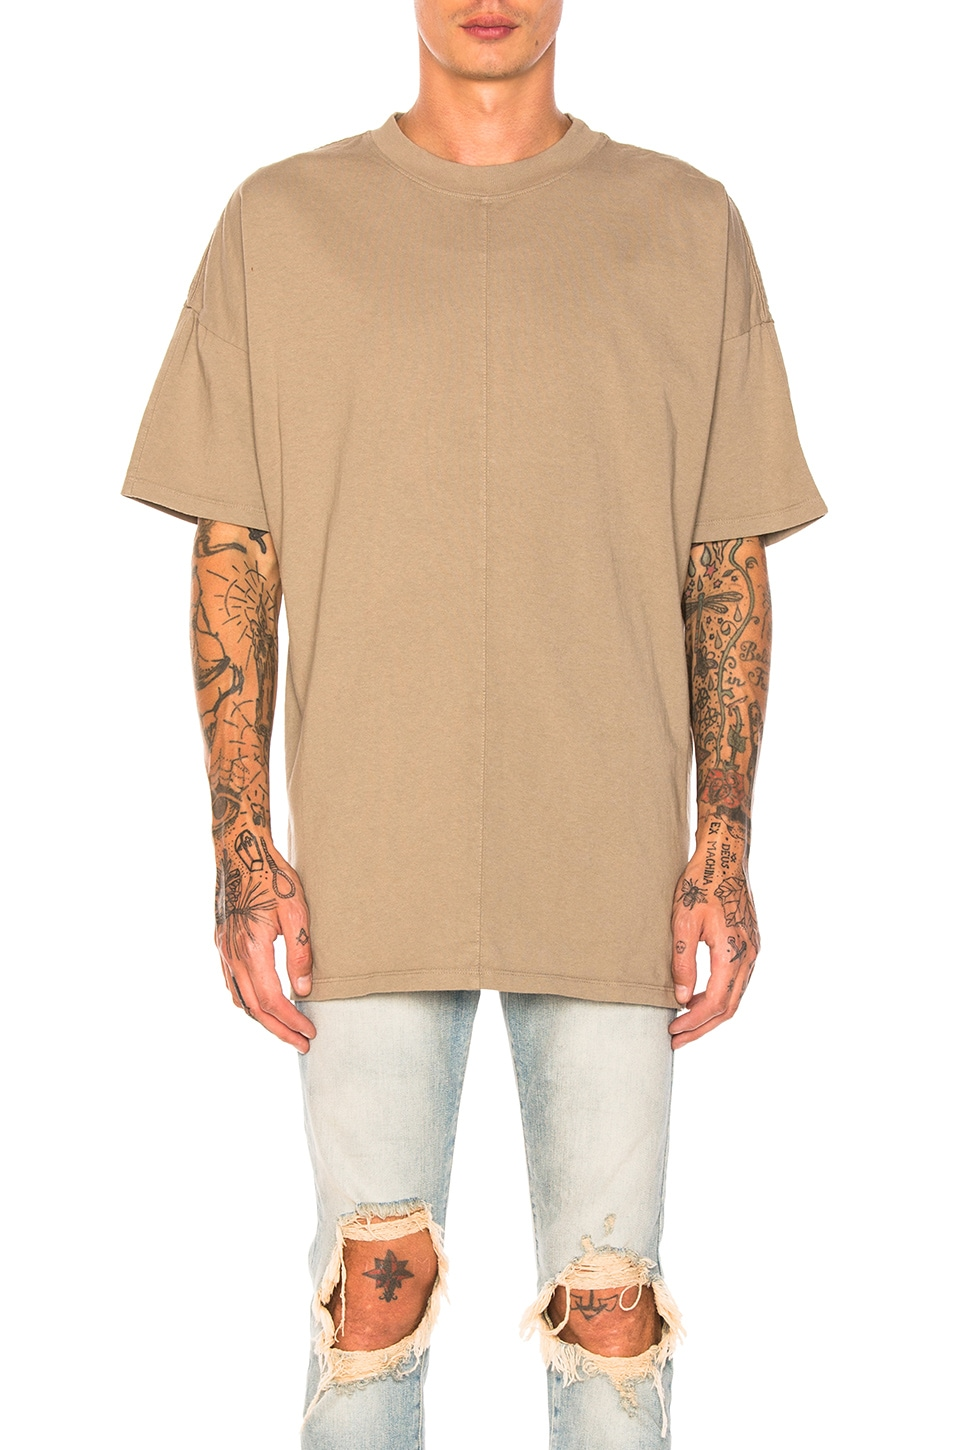 Photo of Oversized Heavy Tee by Daniel Patrick men clothes